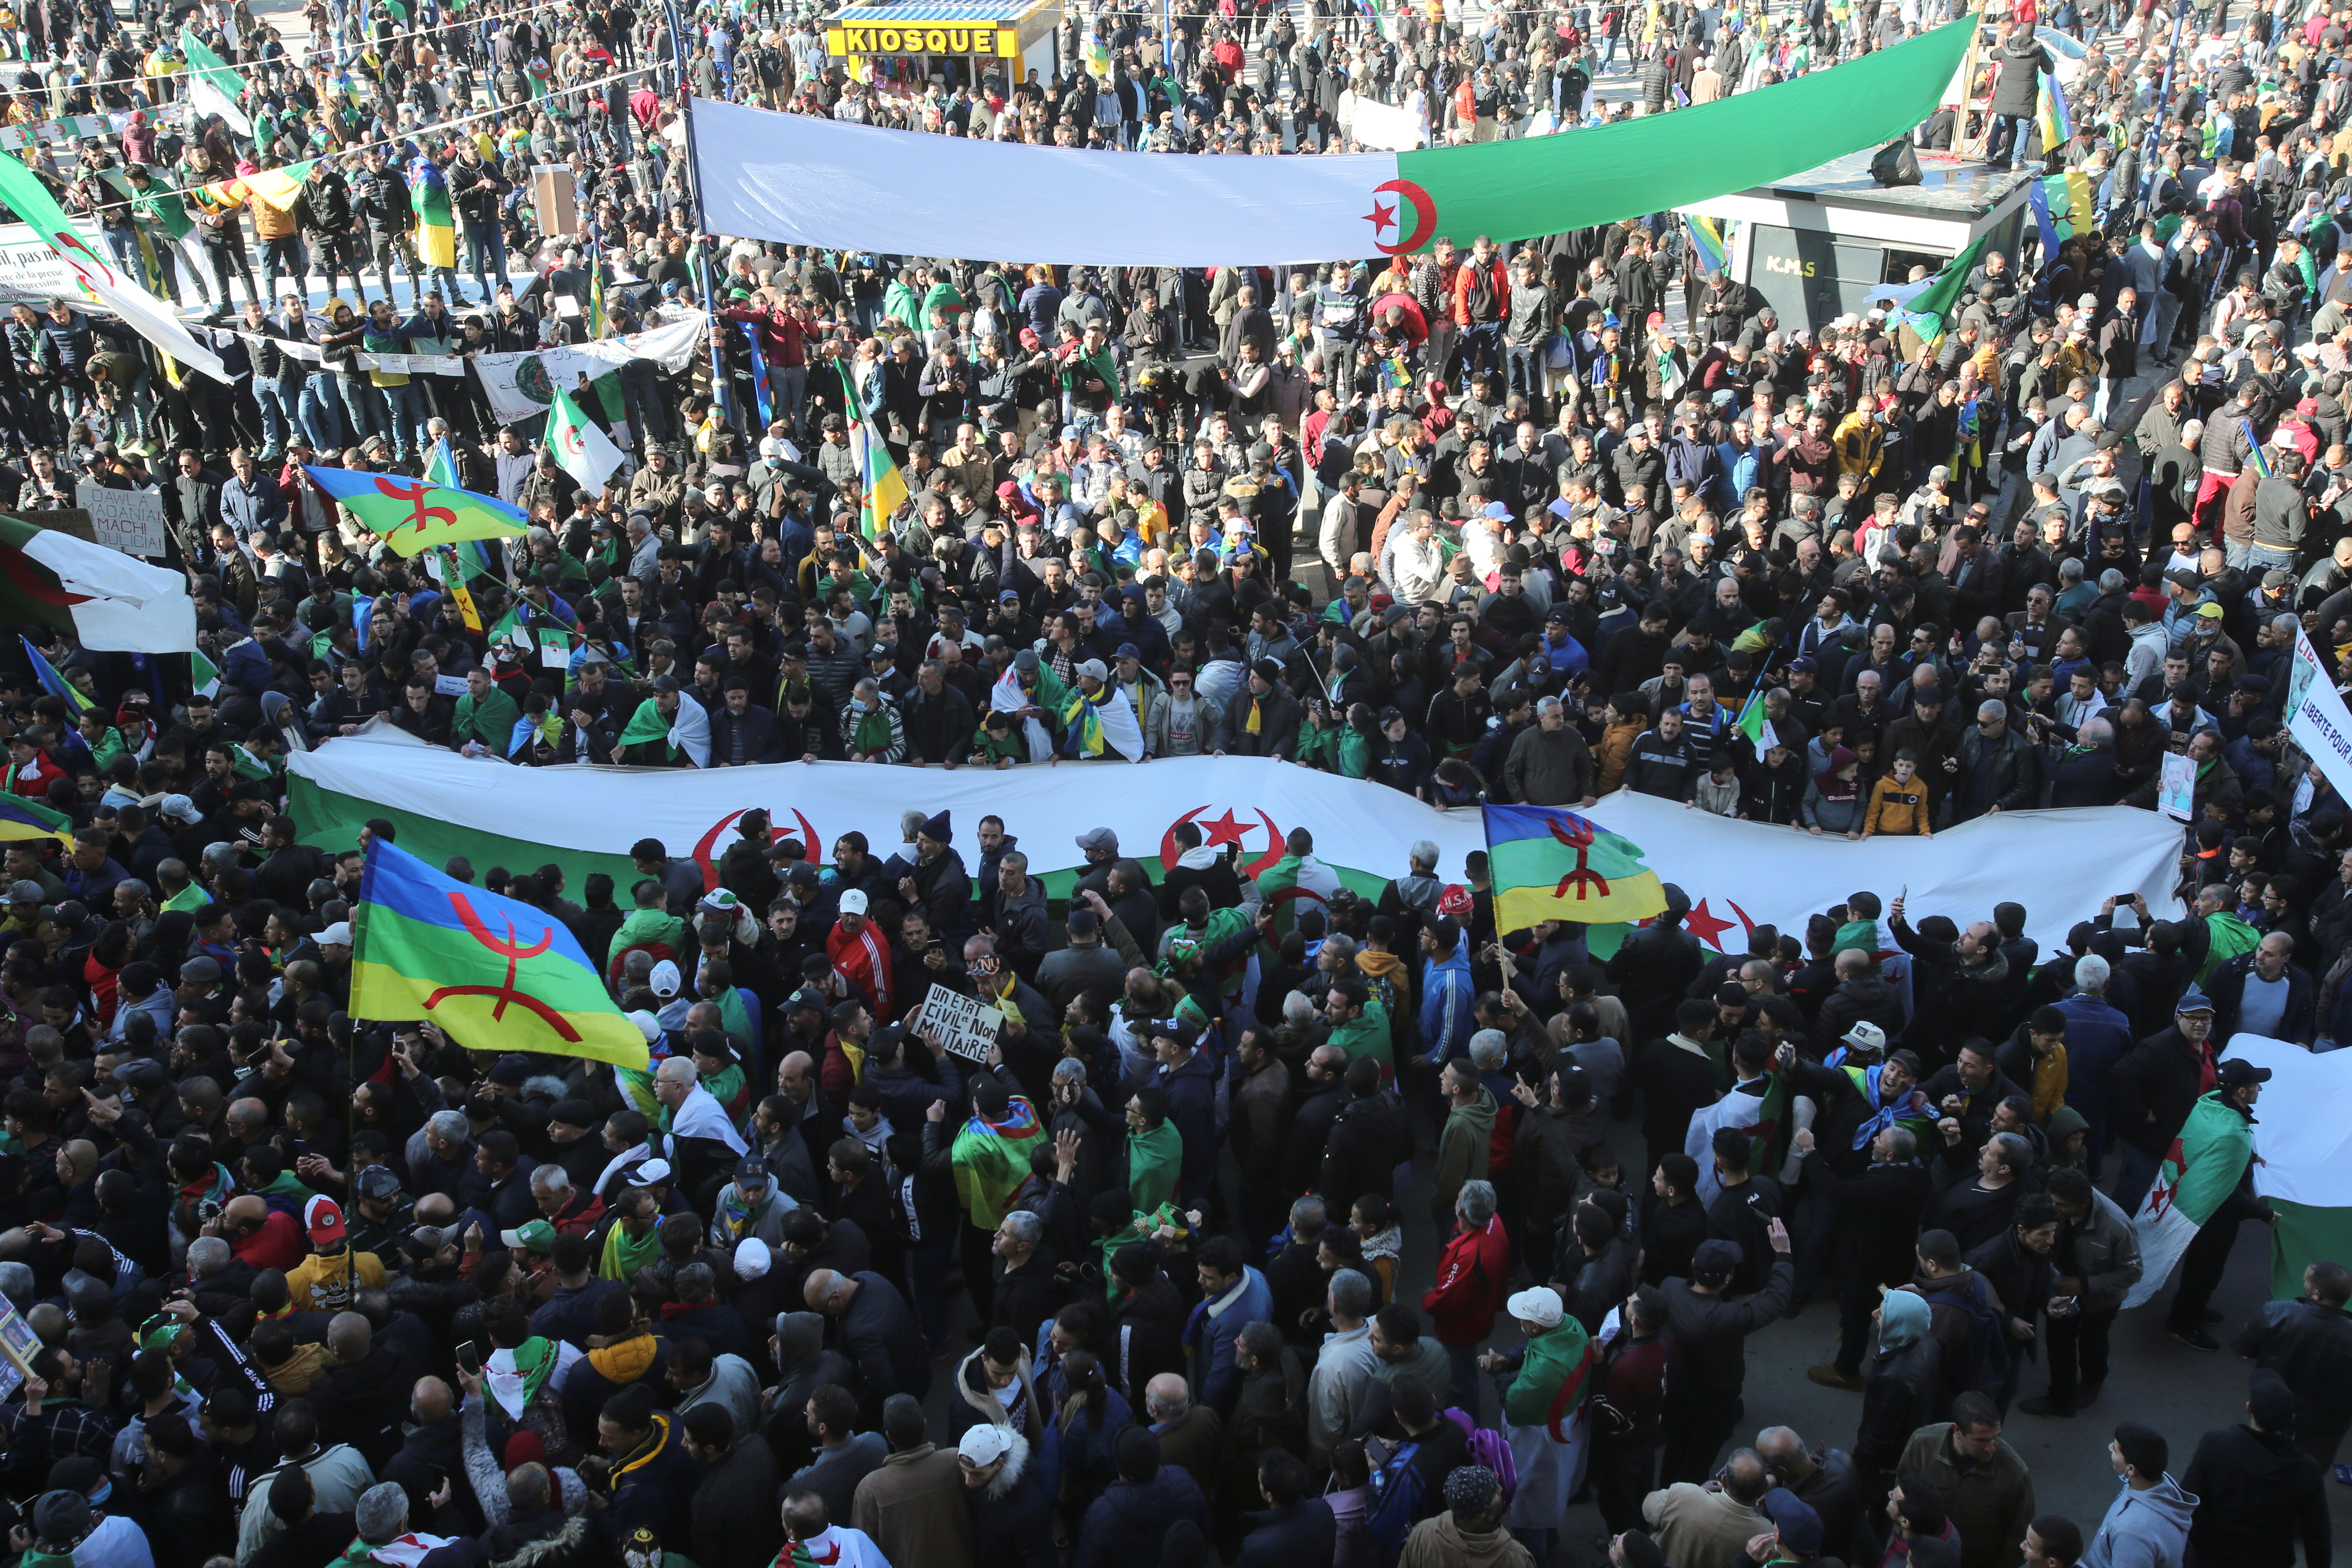 Demonstrators carry flags as they gather in the town of Kherrata, marking two years since the start of a mass protest movement there demanding political change, Algeria February 16, 2021. REUTERS/Ramzi Boudina